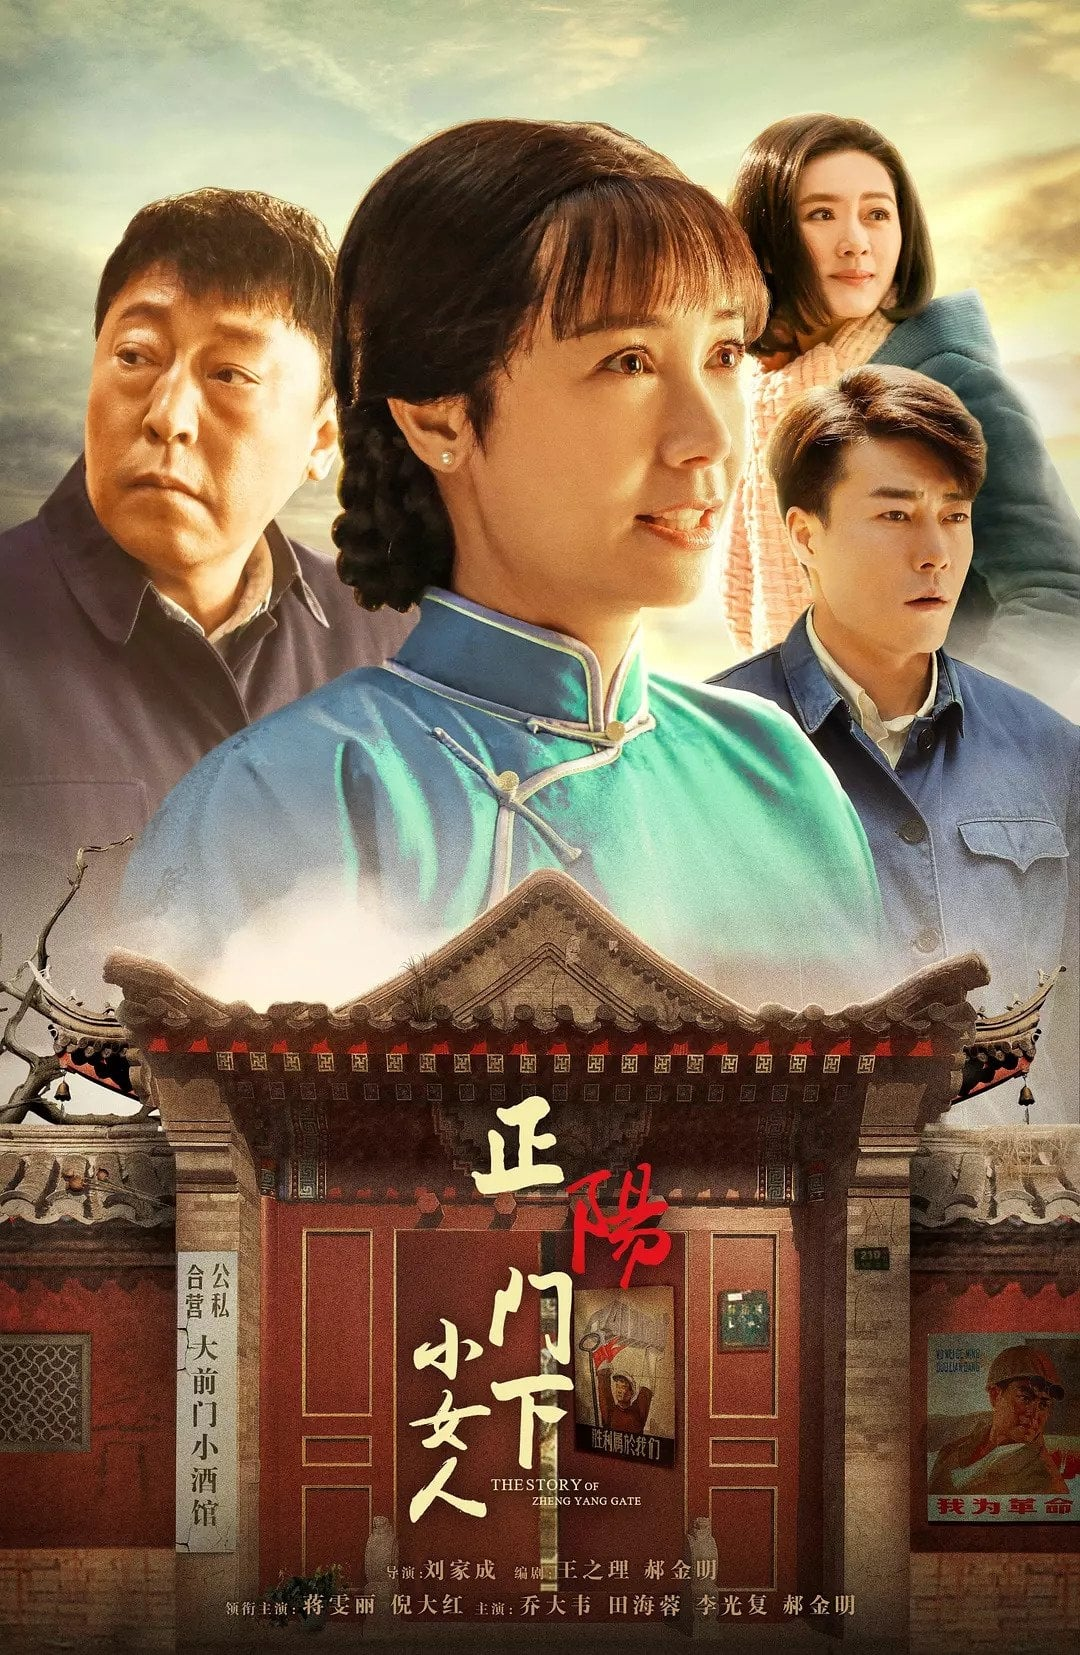 The Story of Zheng Yang Gate (2018)